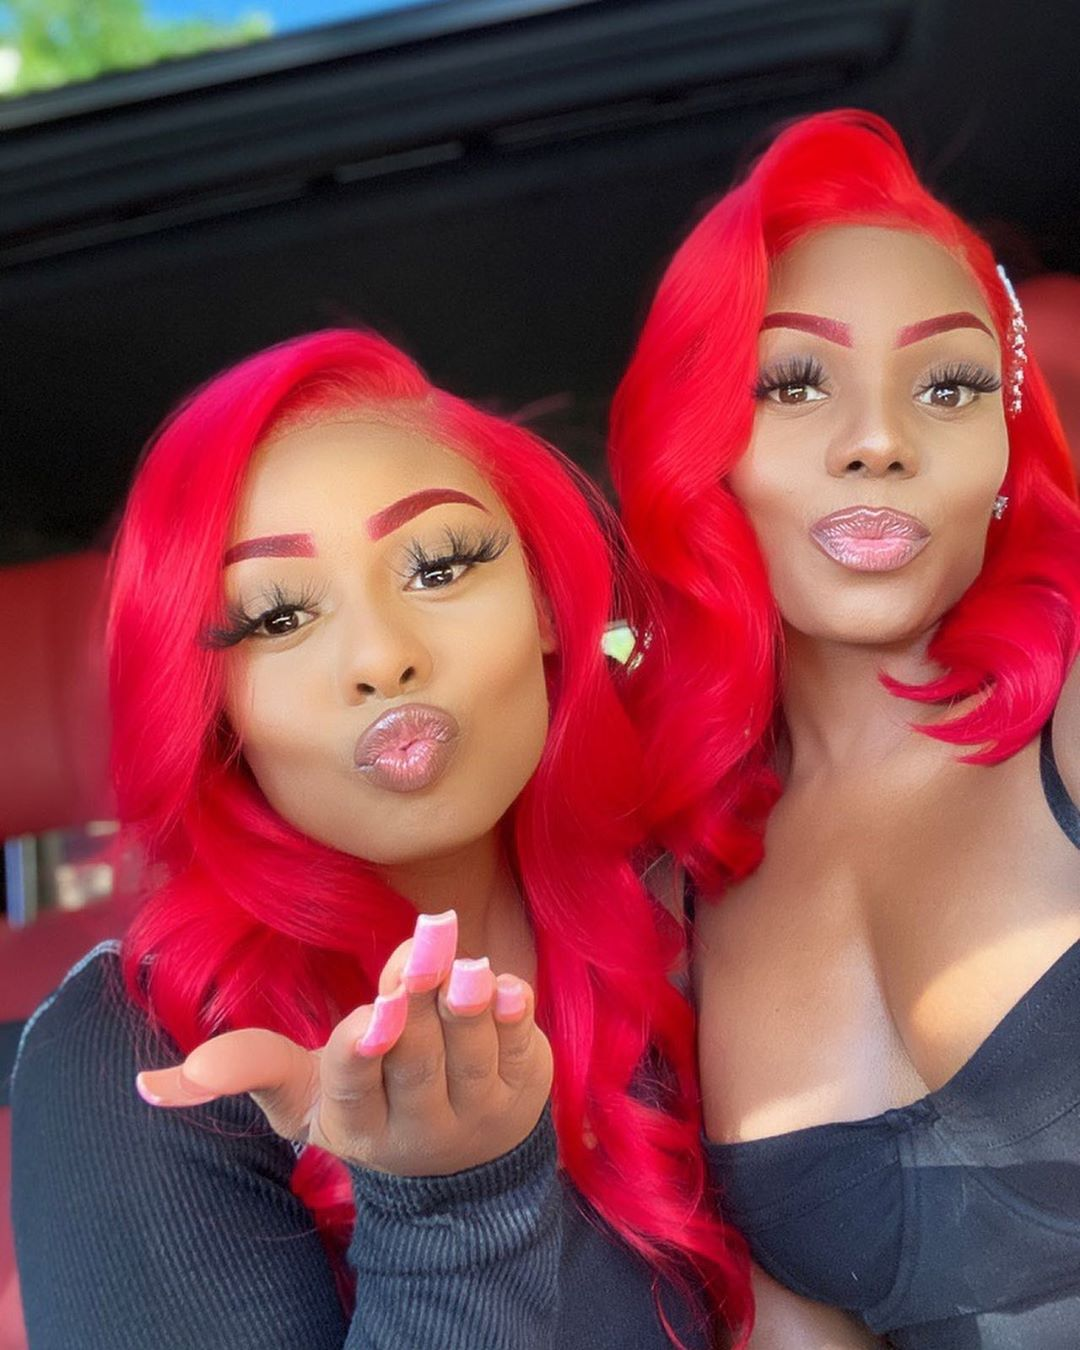 Red Burgundy Brazilian Body Wave Colored 13x4 Lace Front Virgin Human Hair Wig With Baby Hair 180 Density